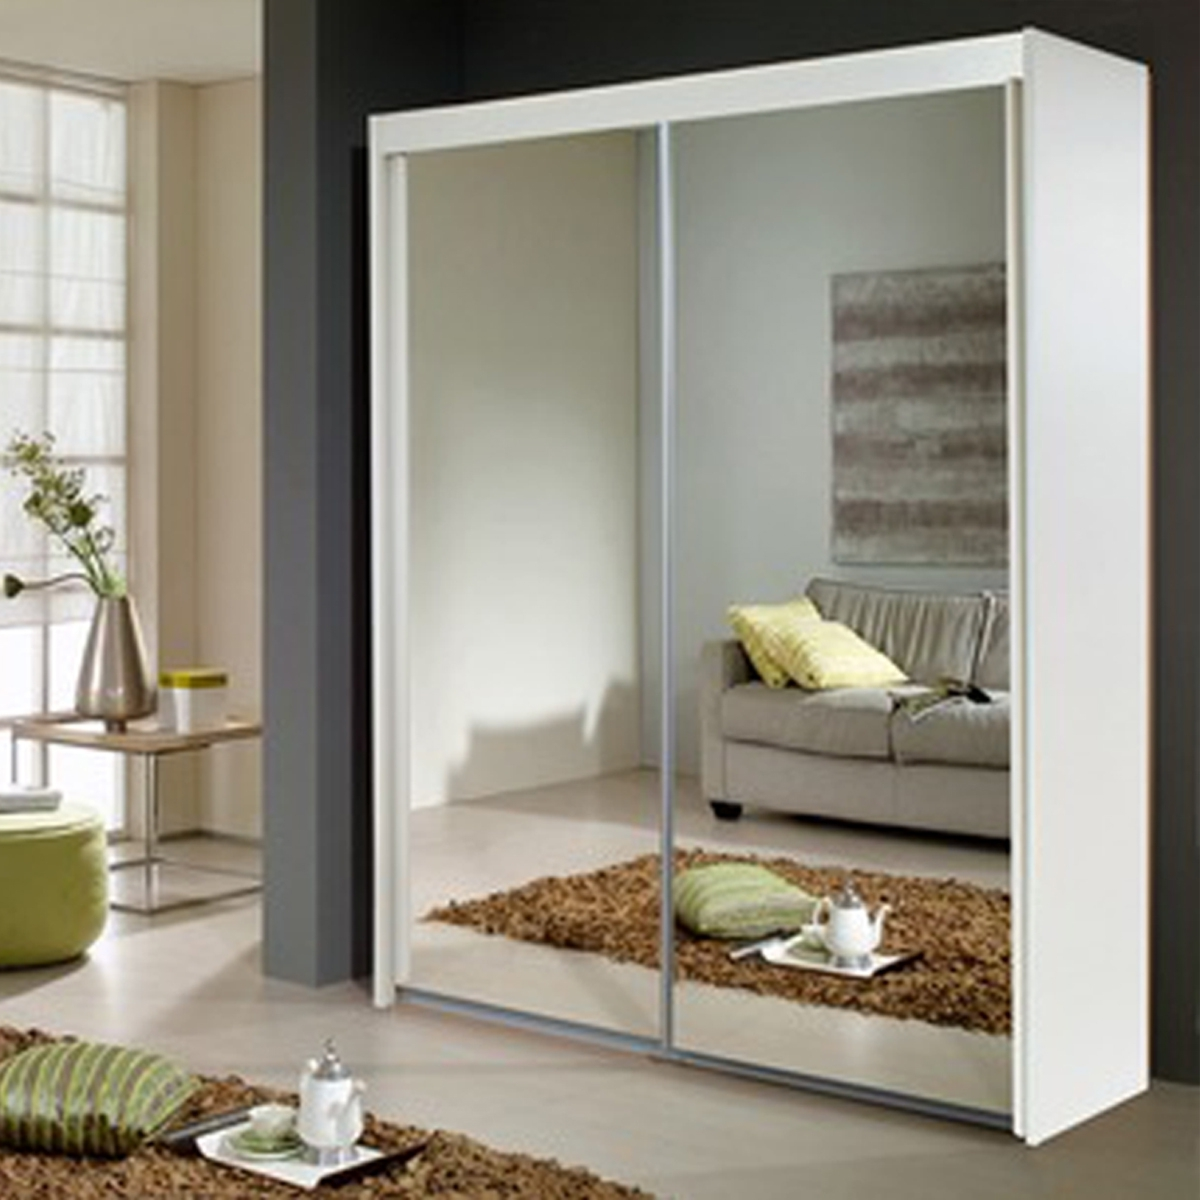 White Sliding Door Wardrobe With Mirror • Sliding Doors Design With Regard To 2018 White Mirrored Wardrobes (View 3 of 15)